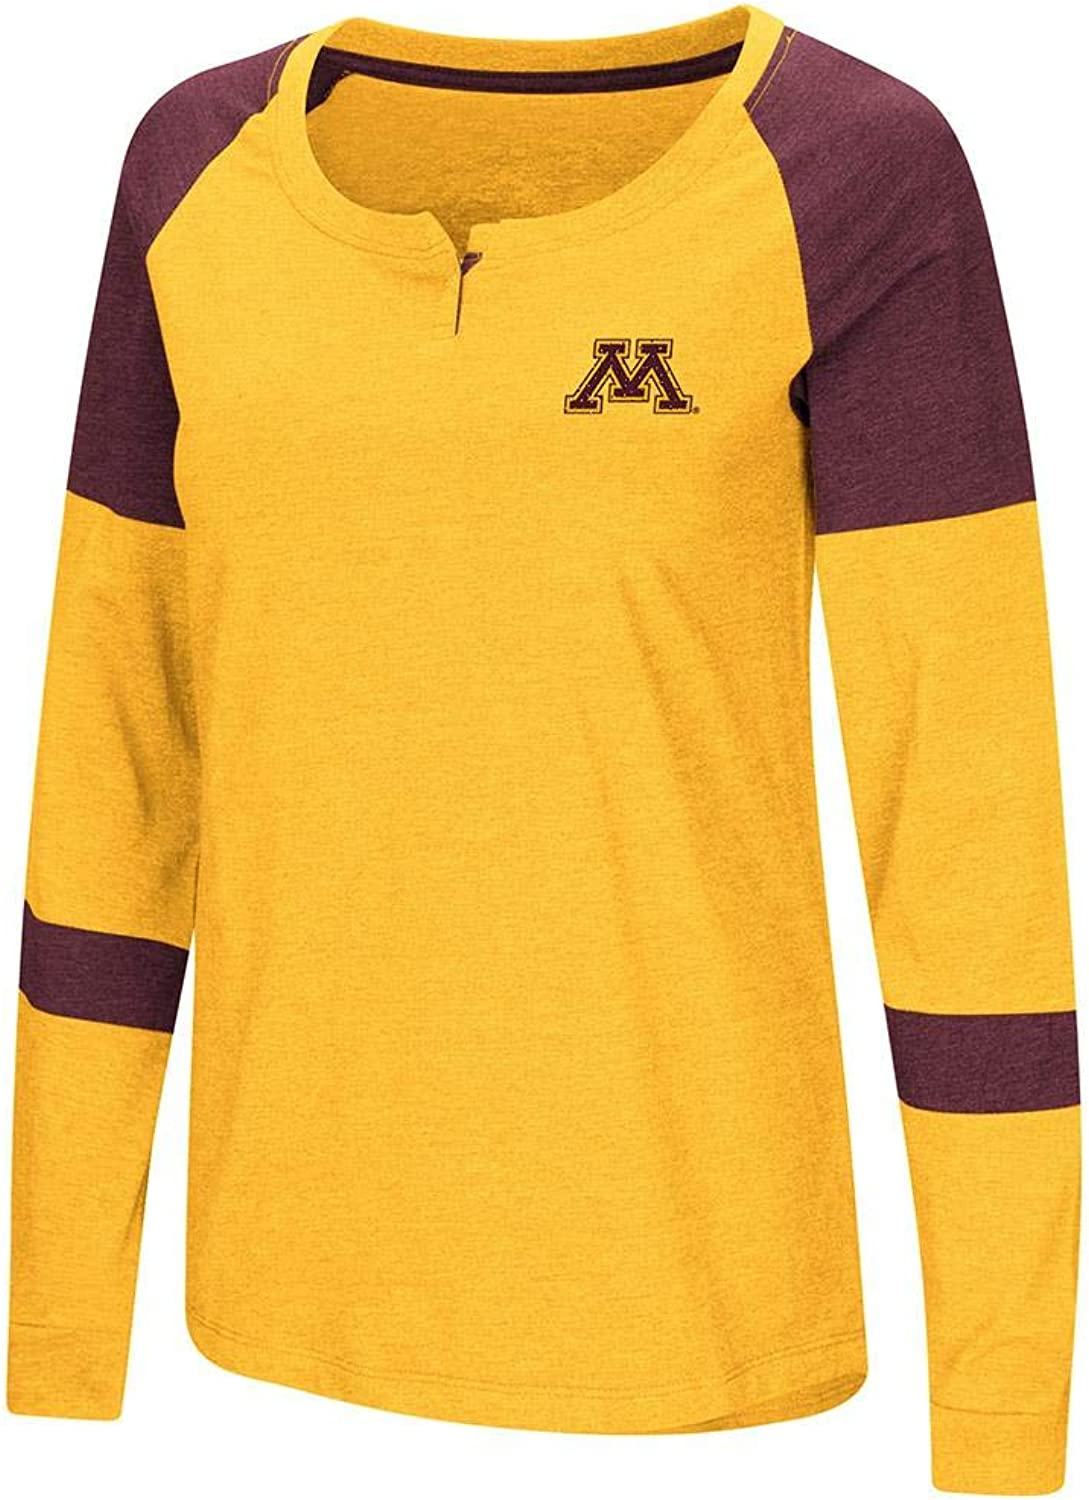 Colosseum Womens Minnesota golden Gophers Long Sleeve Raglan Tee Shirt